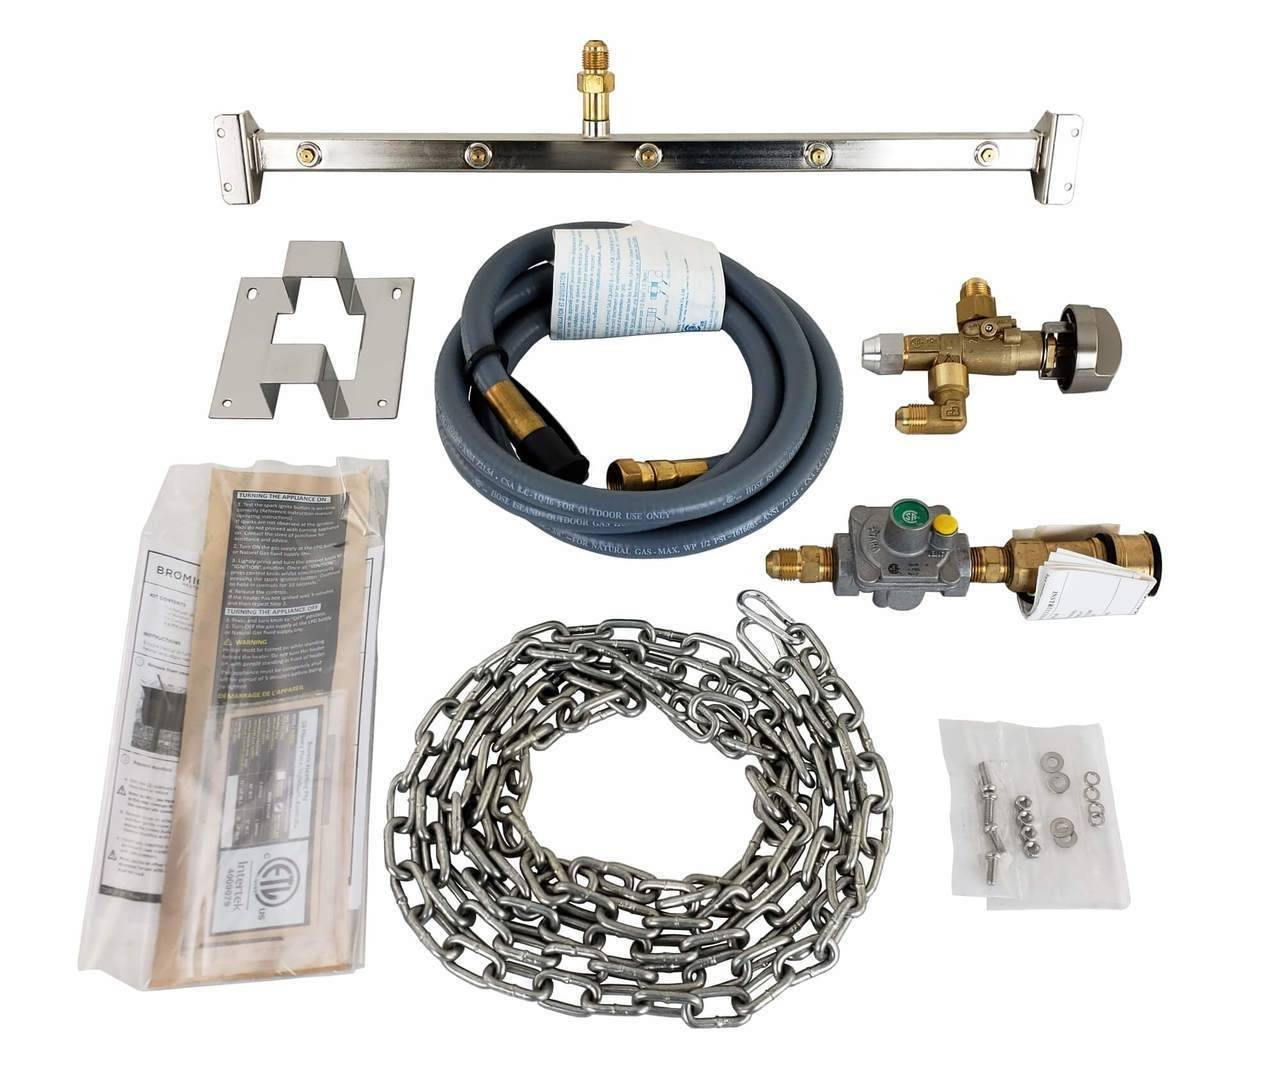 Natural Gas Conversion Kit for Bromic Portable Heater